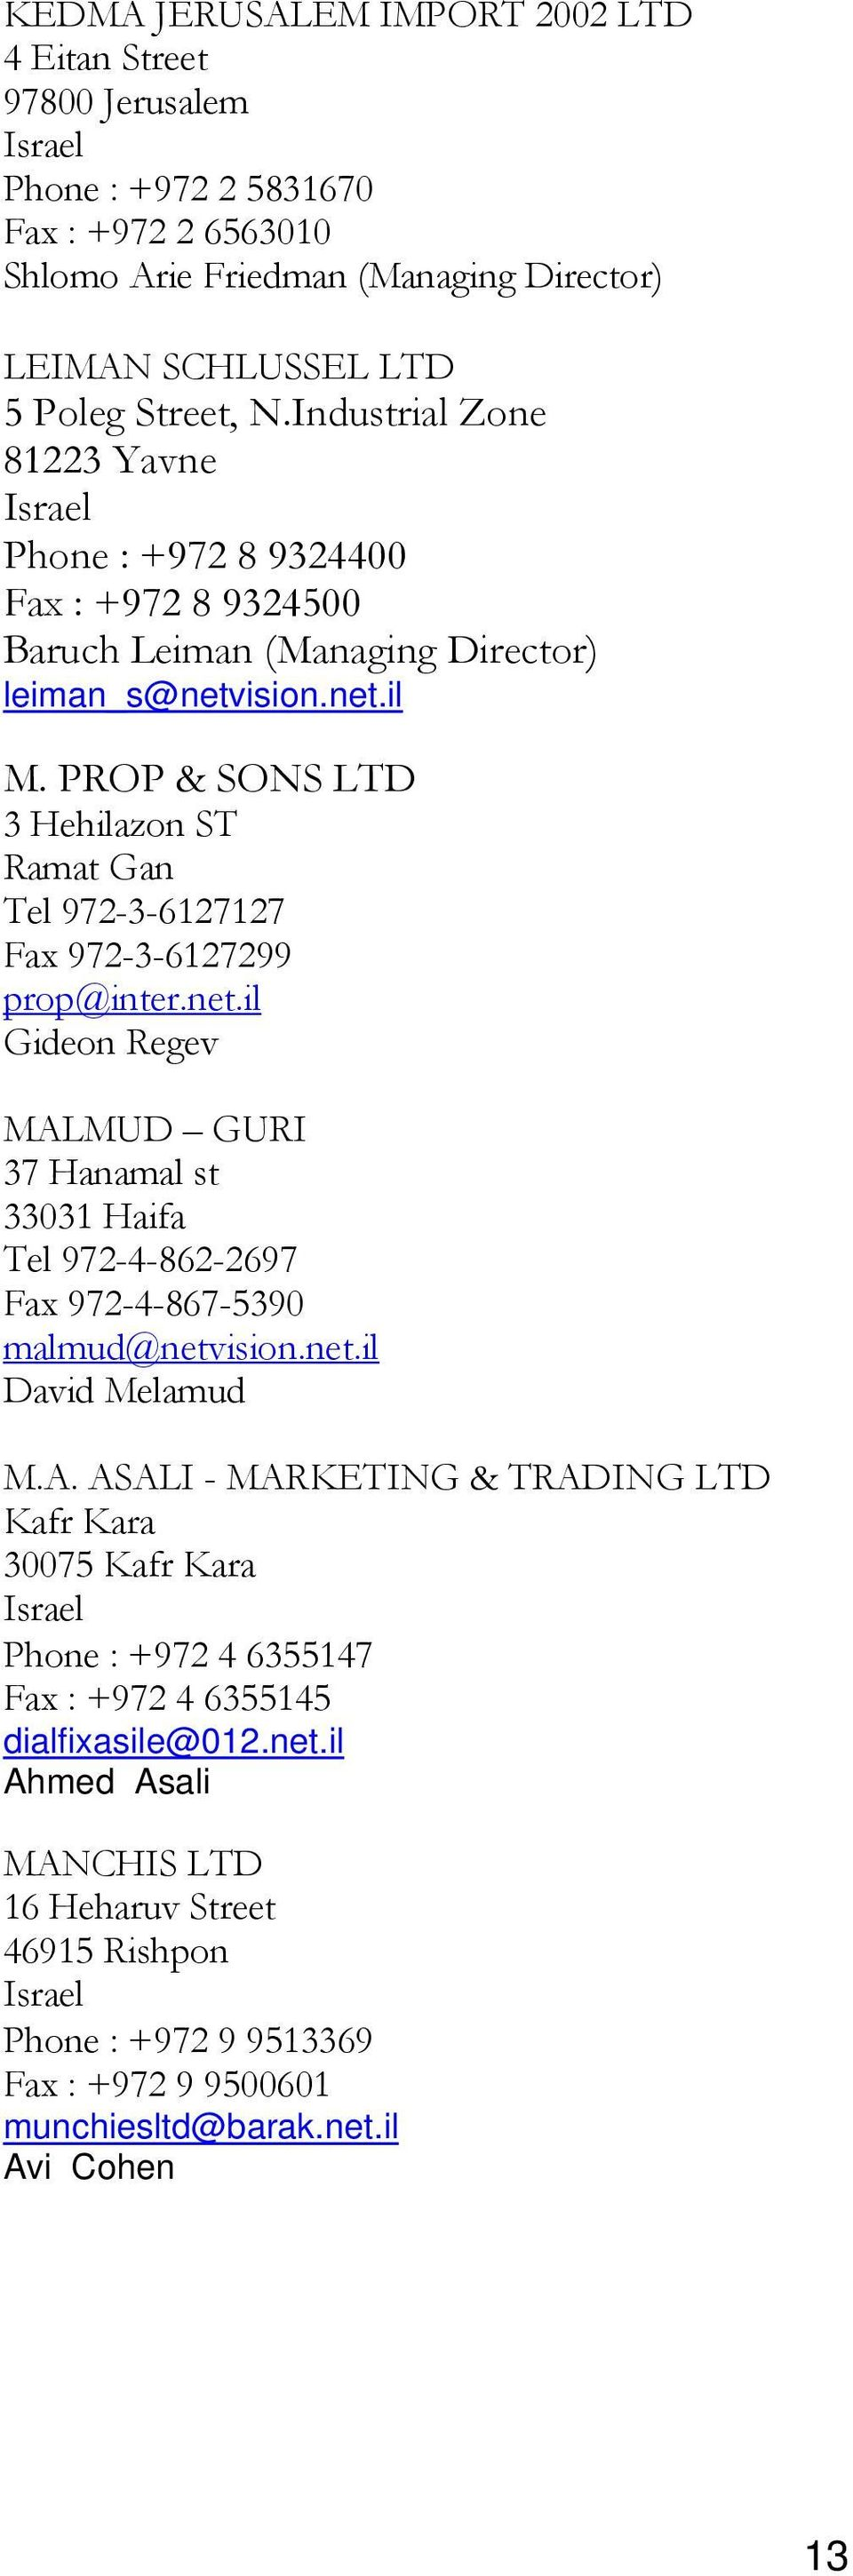 PROP & SONS LTD 3 Hehilazon ST Ramat Gan Tel 972-3-6127127 Fax 972-3-6127299 prop@inter.net.